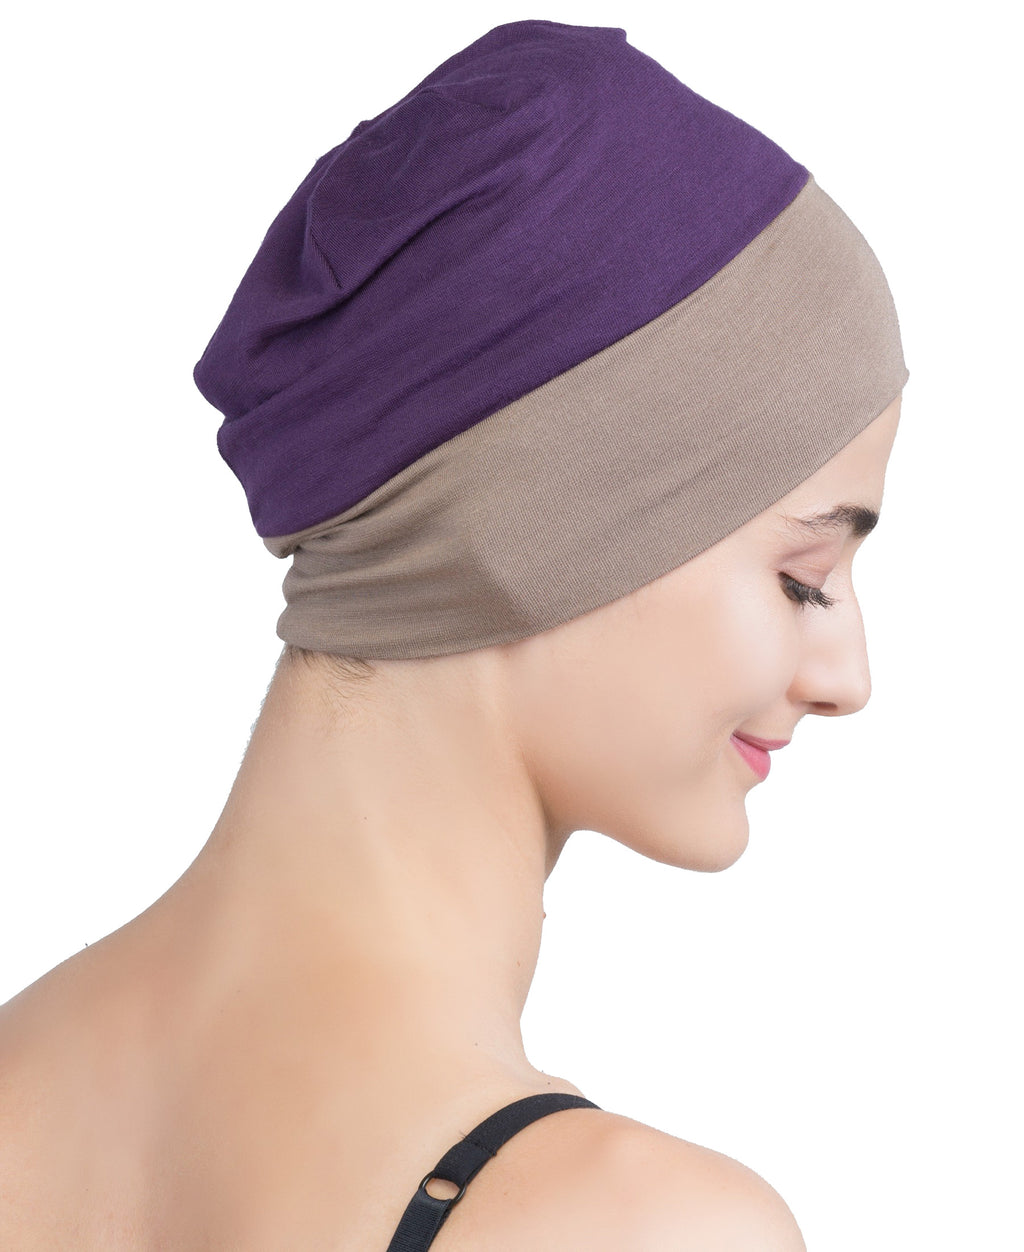 Wrap-fit Sleep Cap - Mulberry Mink